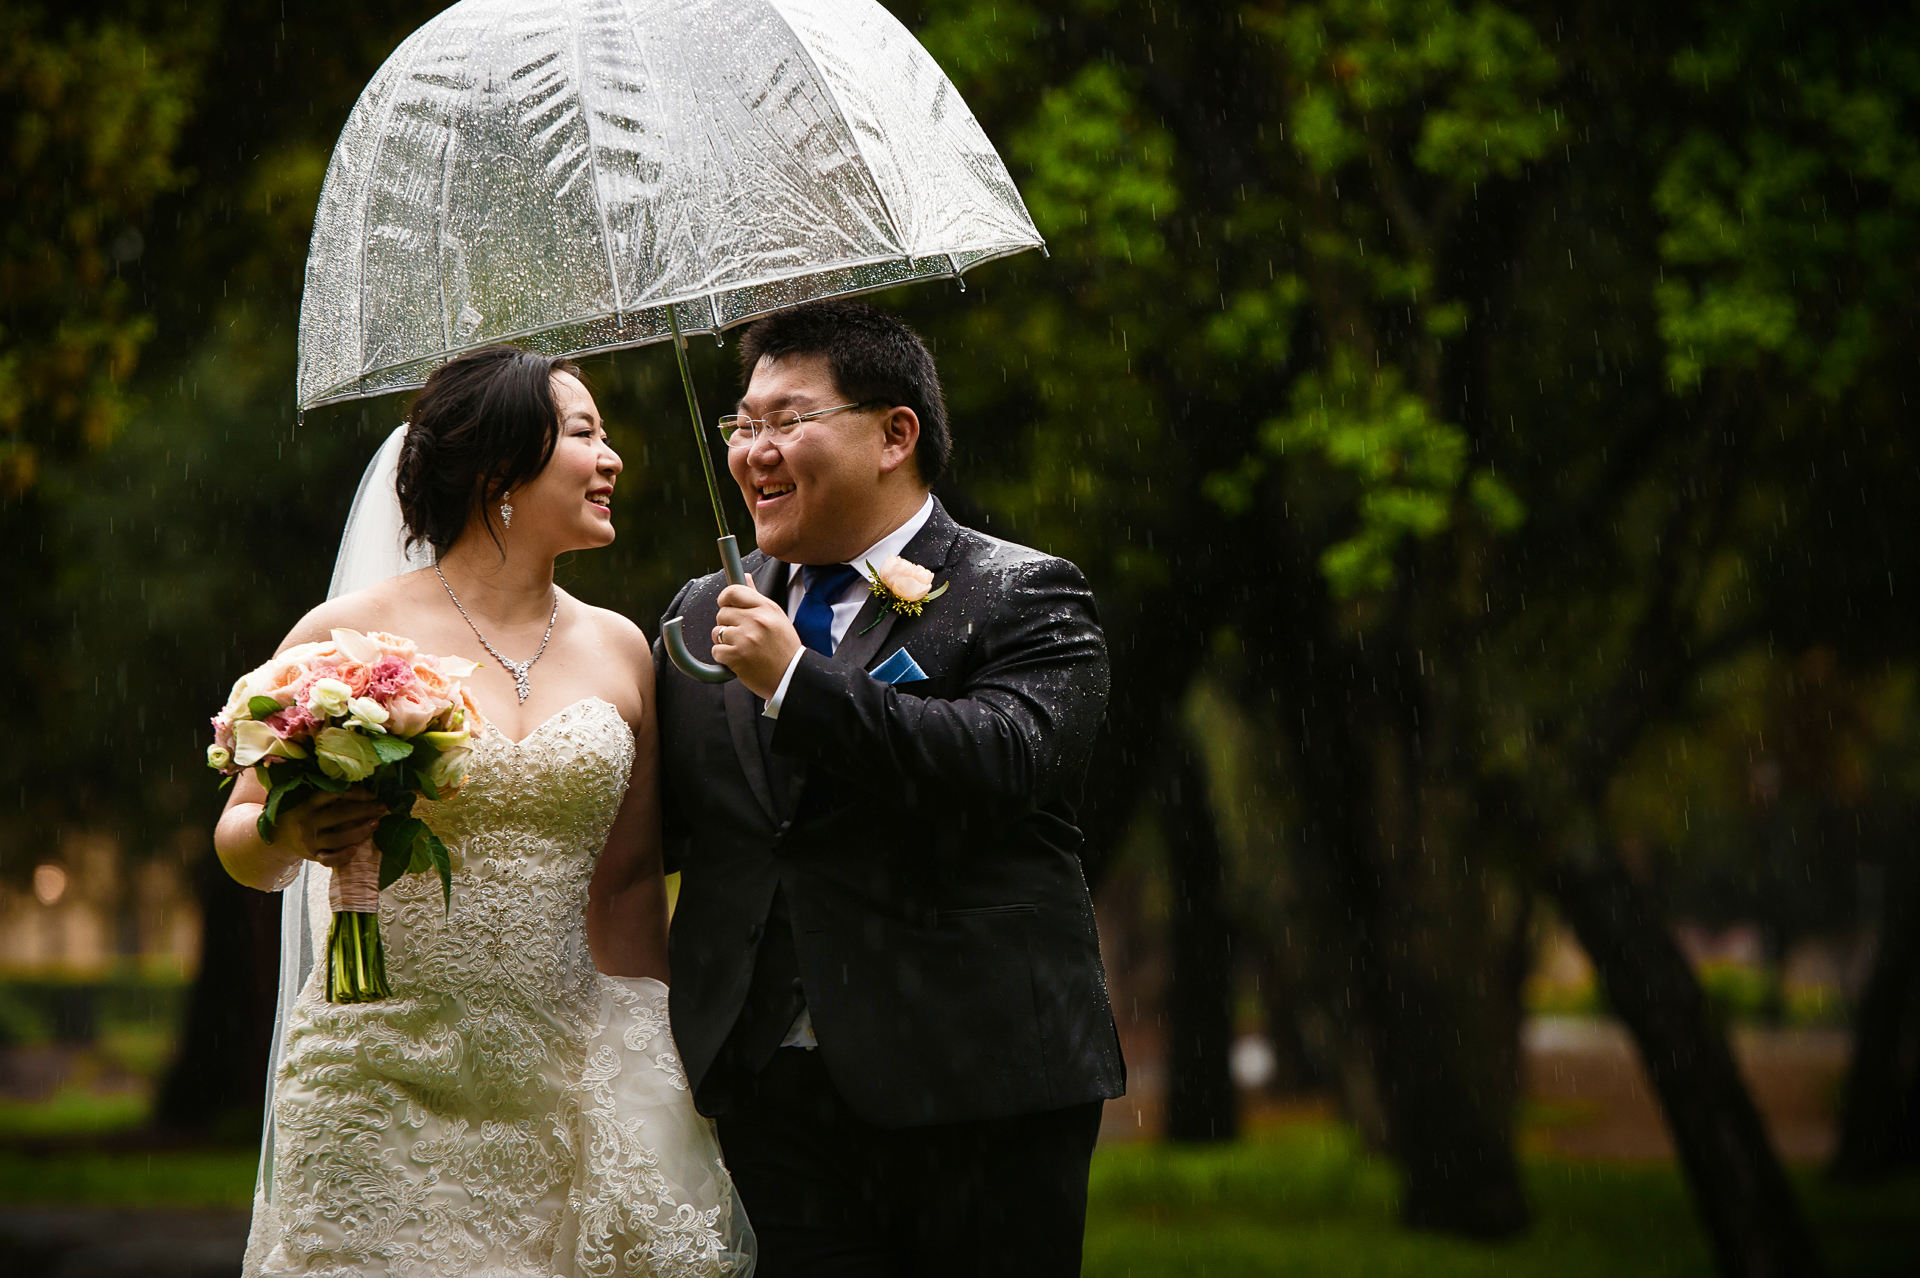 Stanford memorial church wedding on a rainy day!